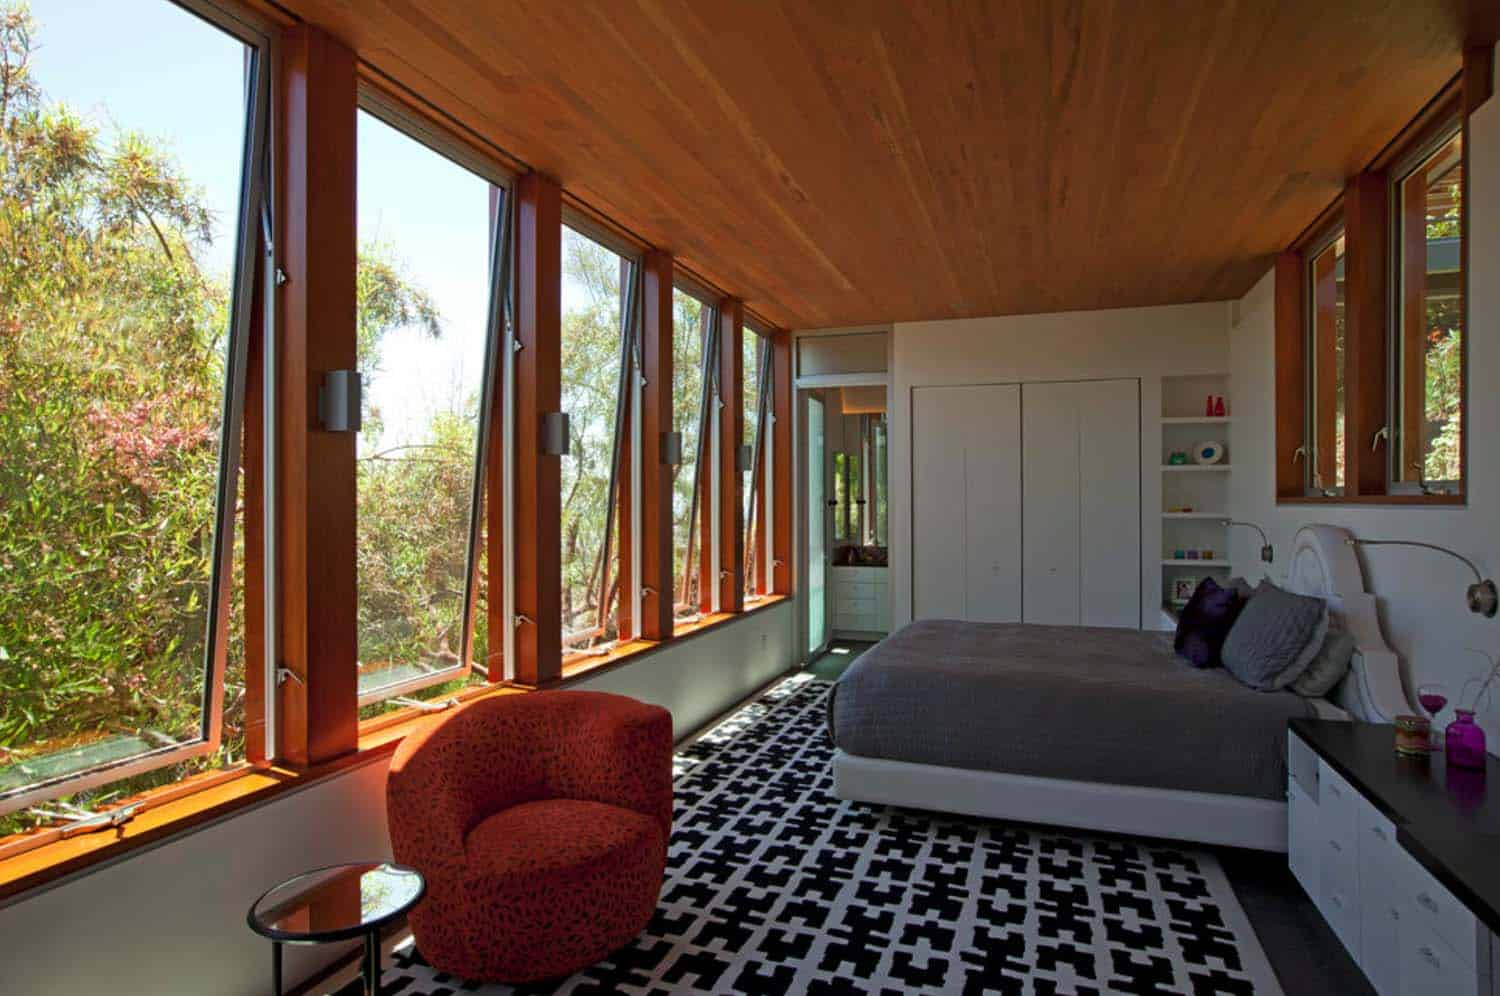 Wave House-Safdie Rabines Architects-15-1 Kindesign